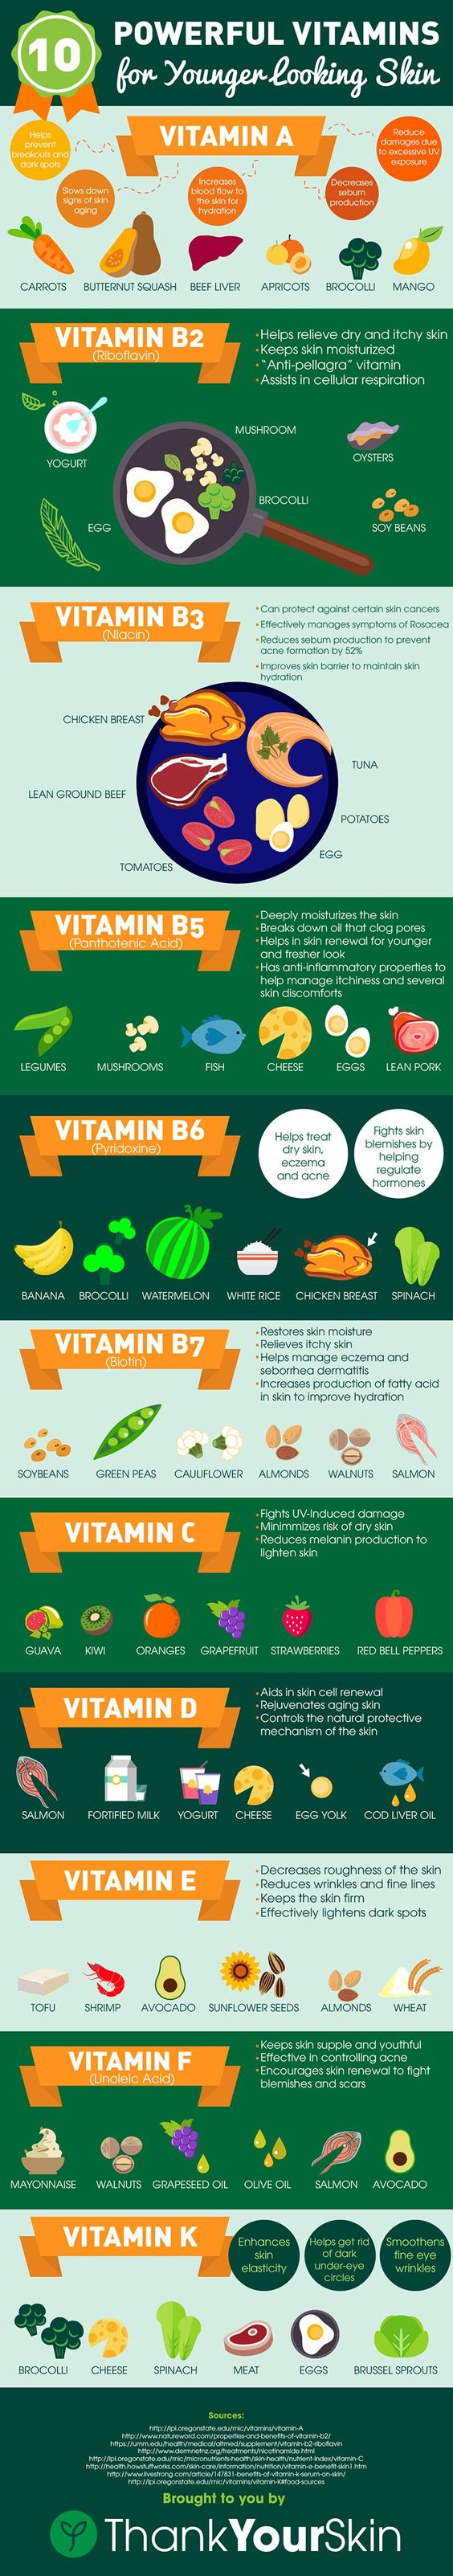 10 Powerful Vitamins For Younger-Looking Skin